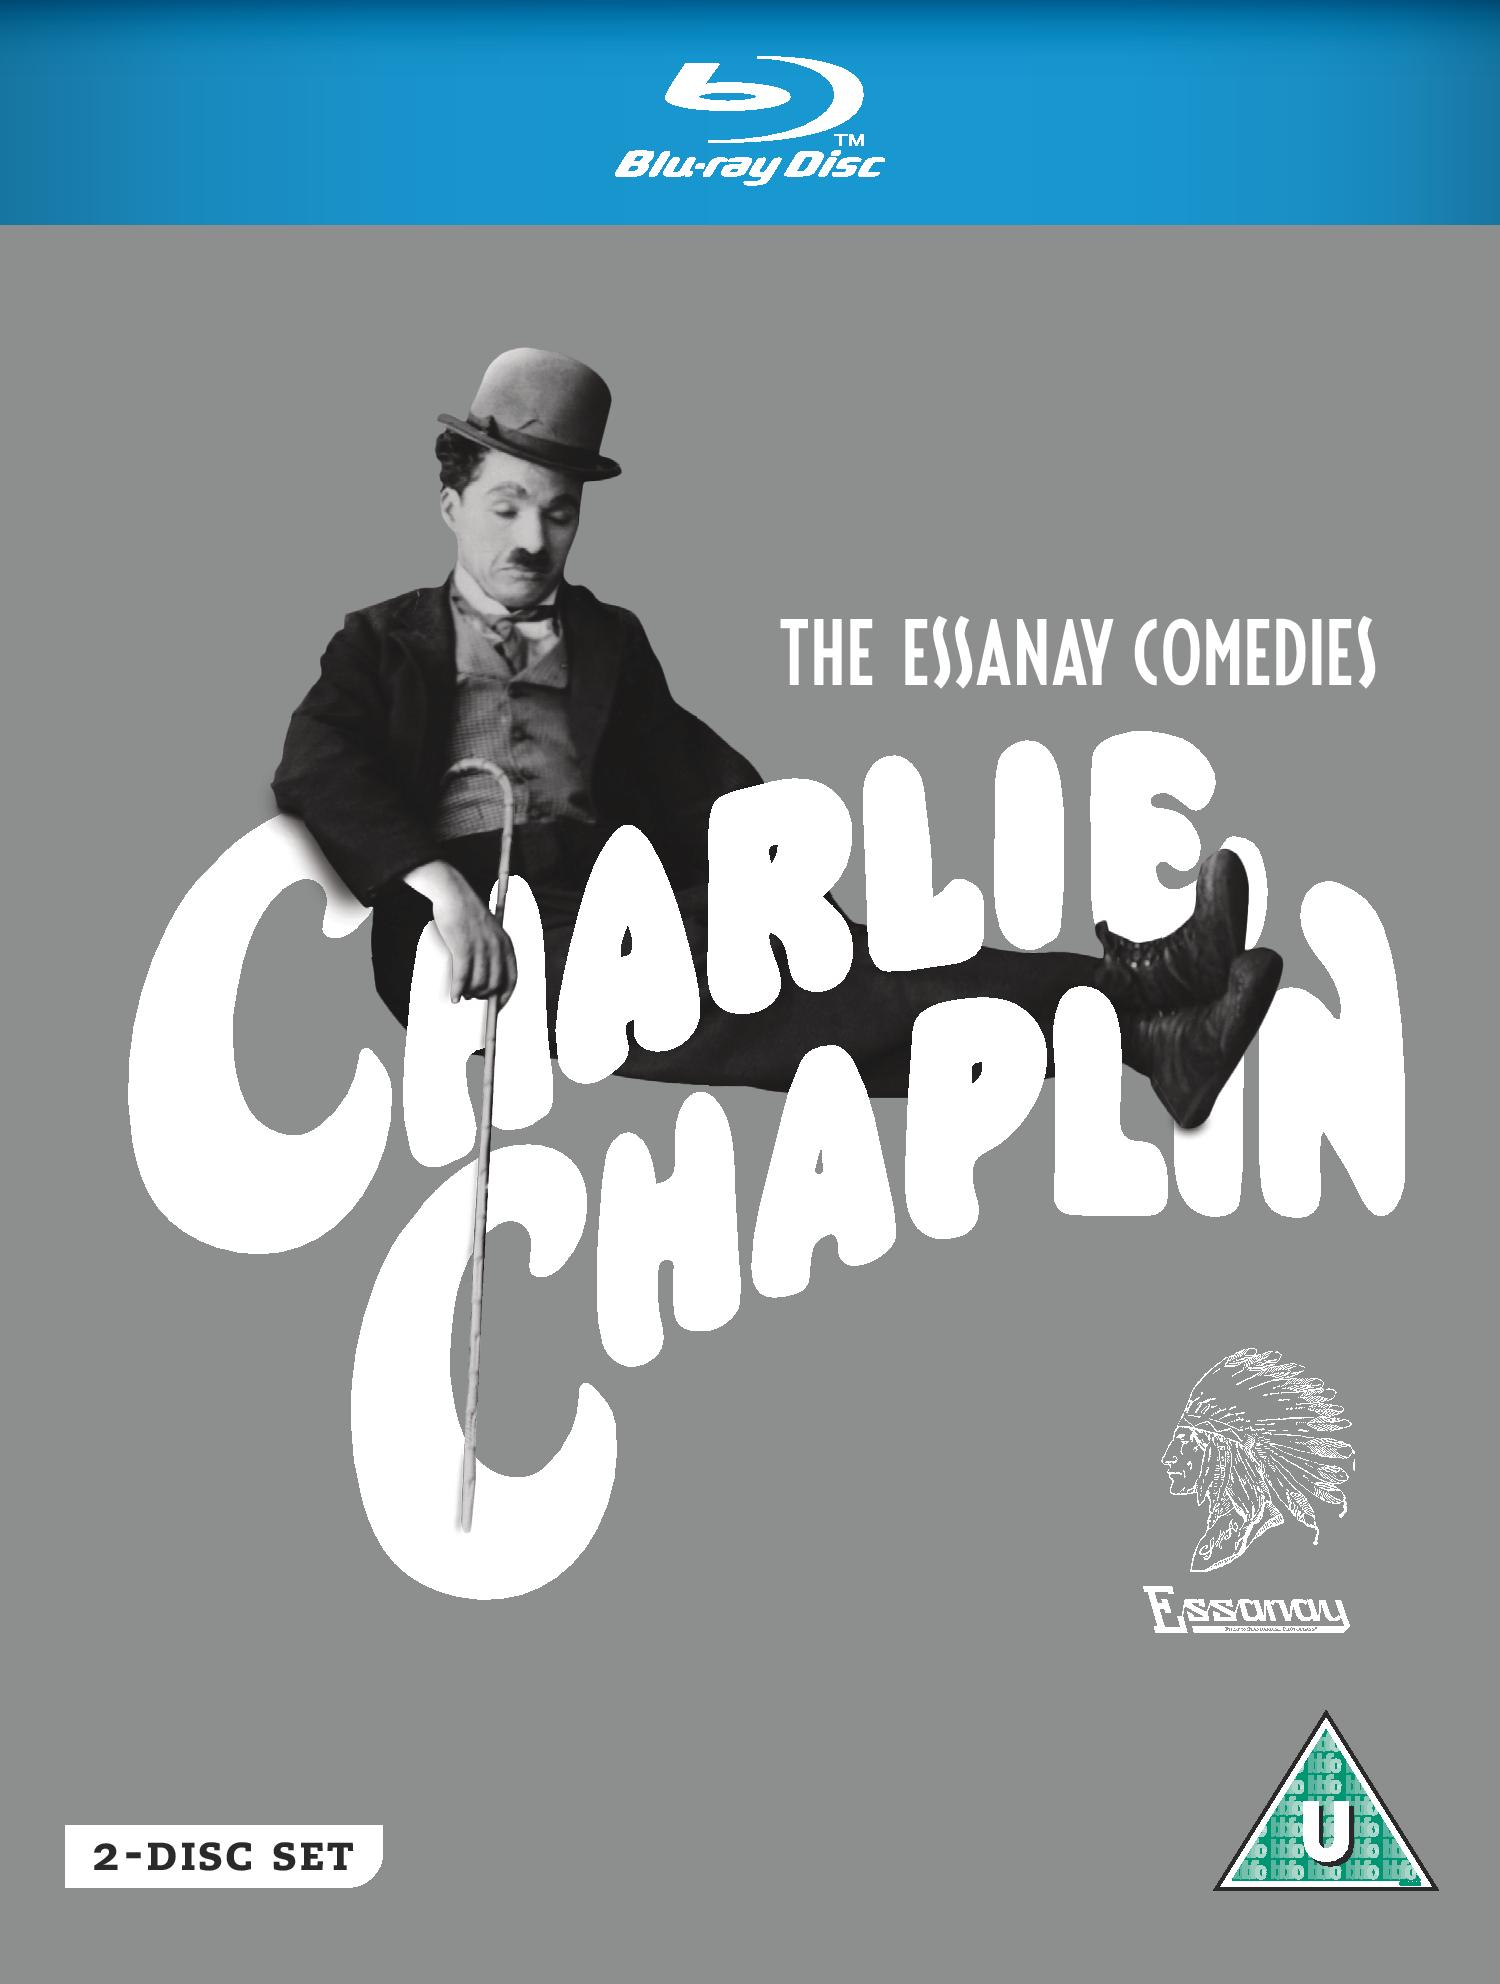 Buy Charlie Chaplin: The Essanay Comedies Blu-ray set